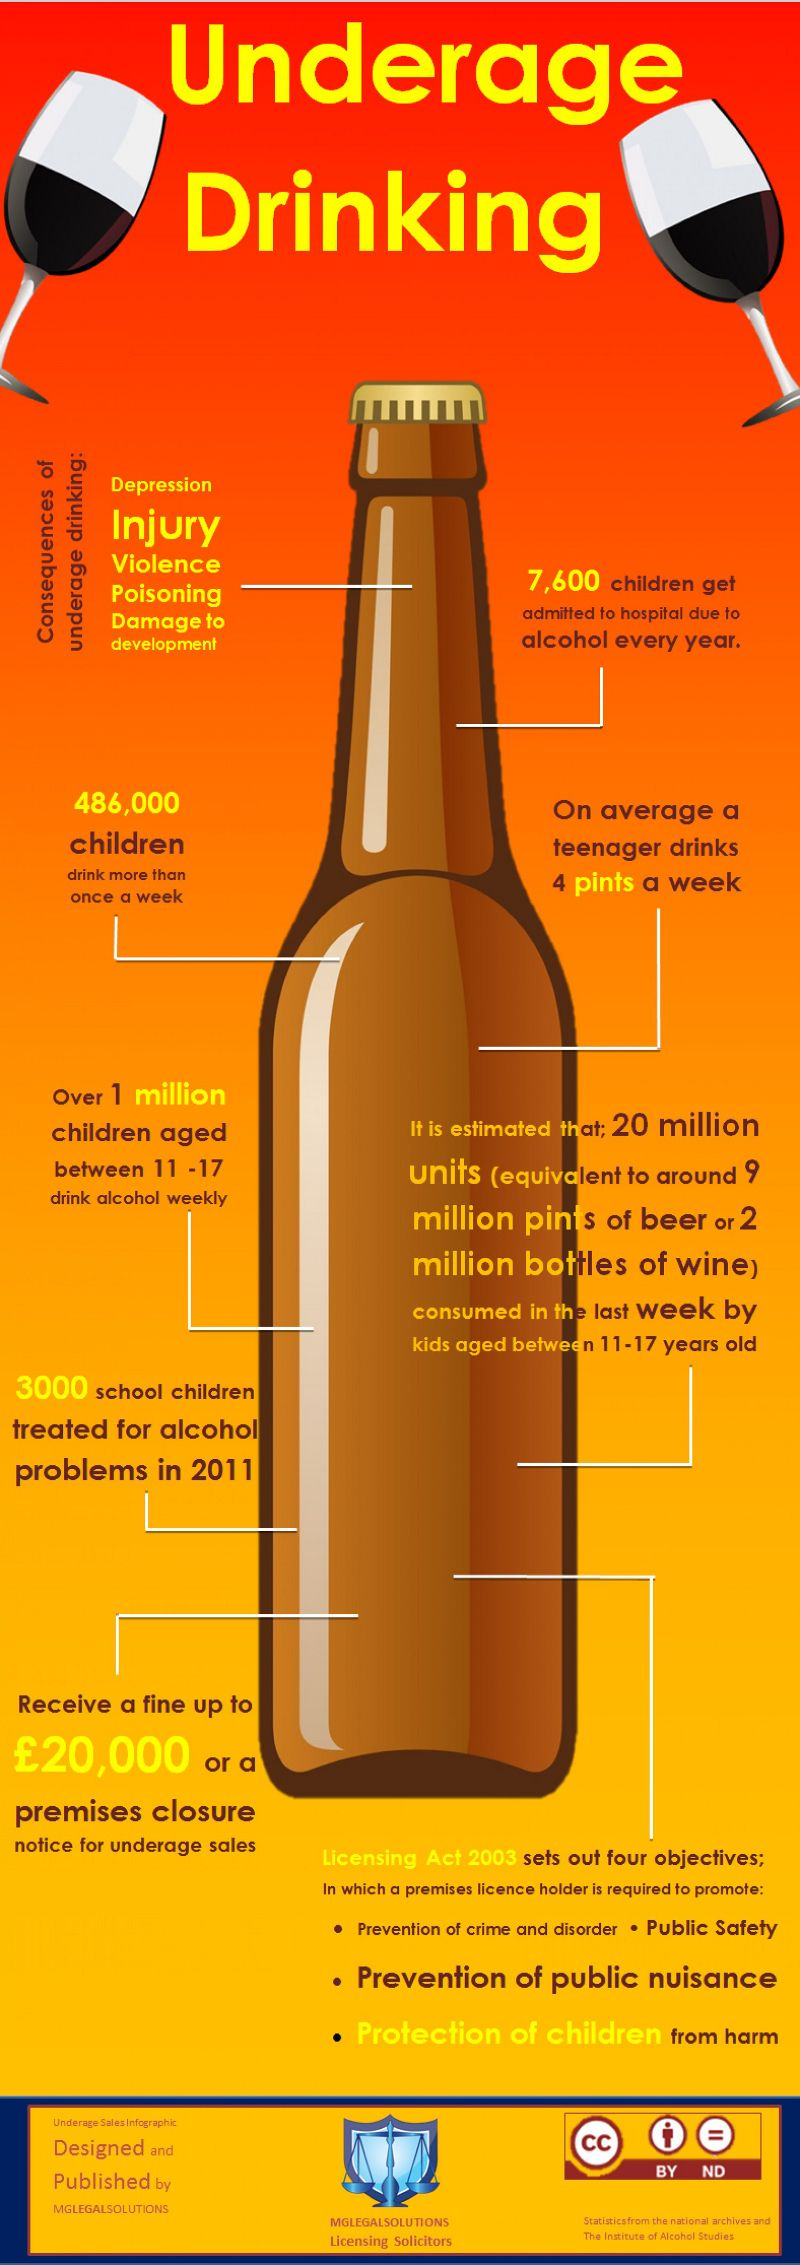 47 Dramatic Underaged Drinking Statistics Underage Drinking Alcohol Prevention Alcohol Abuse